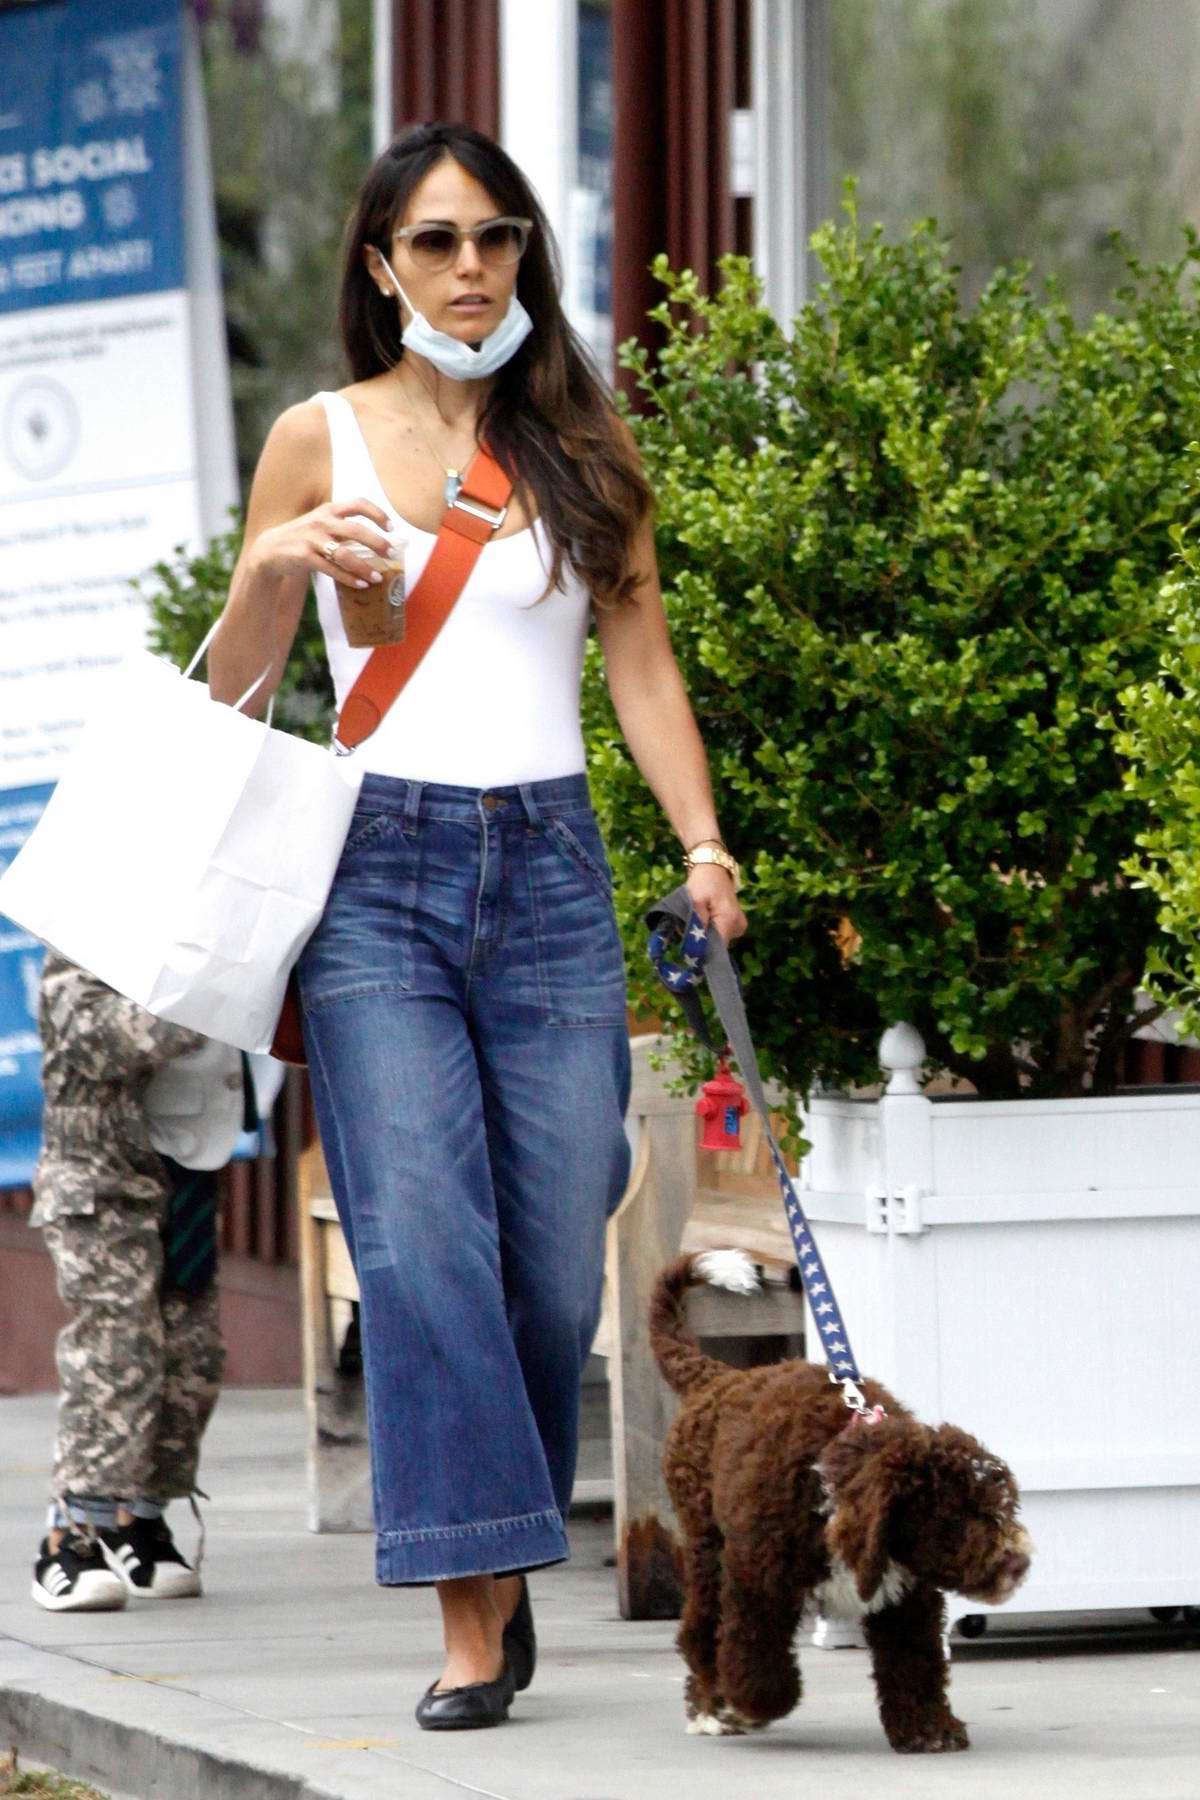 Jordana Brewster takes her kids and dog to breakfast at Caffe Luxxe in Brentwood, California